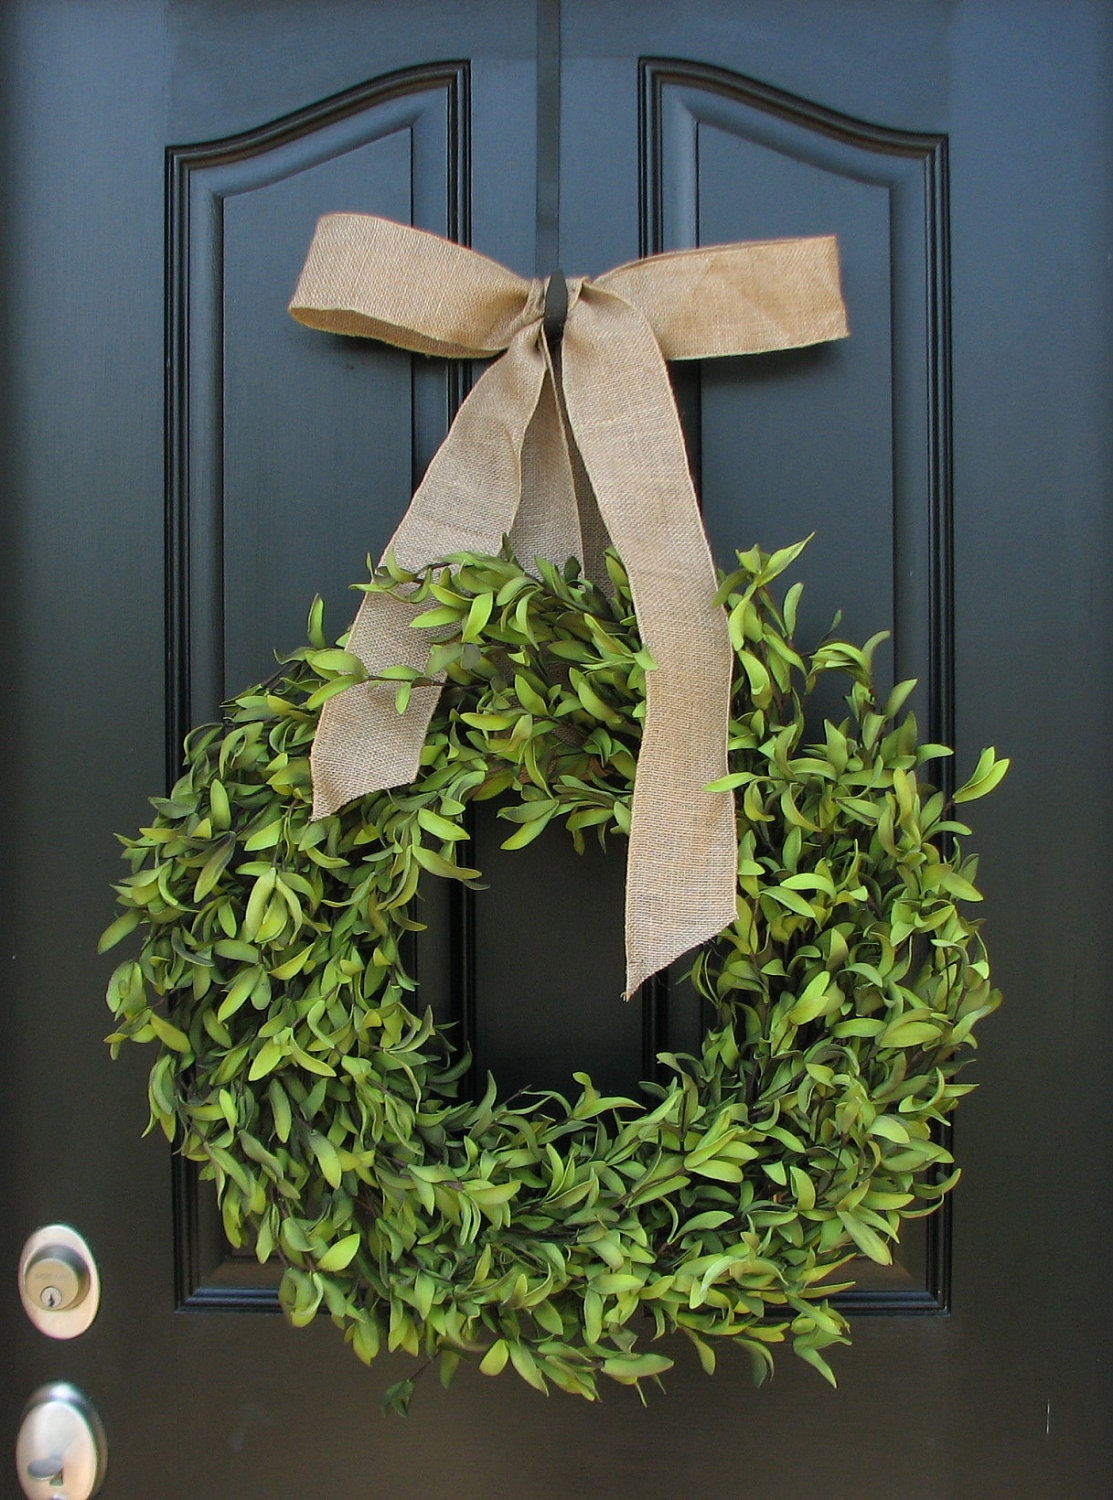 Boxwood wreaths 17 artificial boxwood boxwood decor for Decor 17